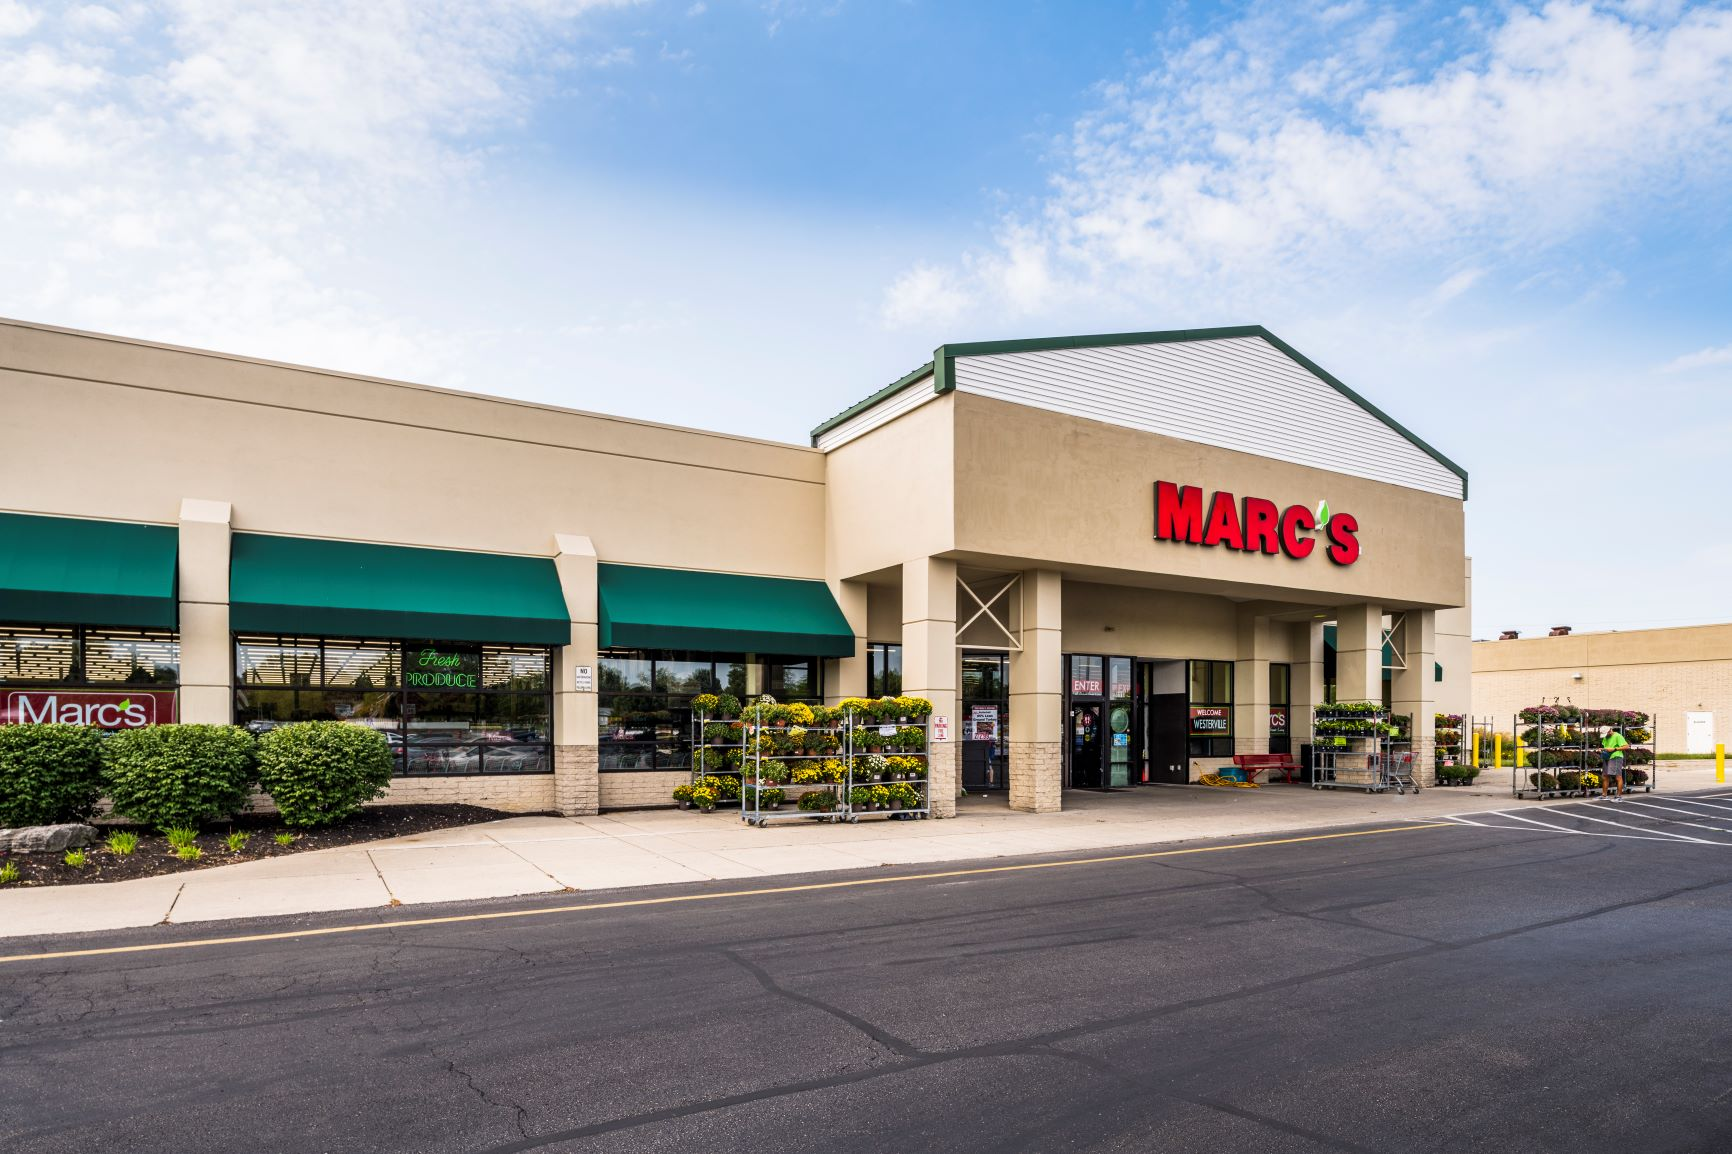 Marc's - West Park Plaza